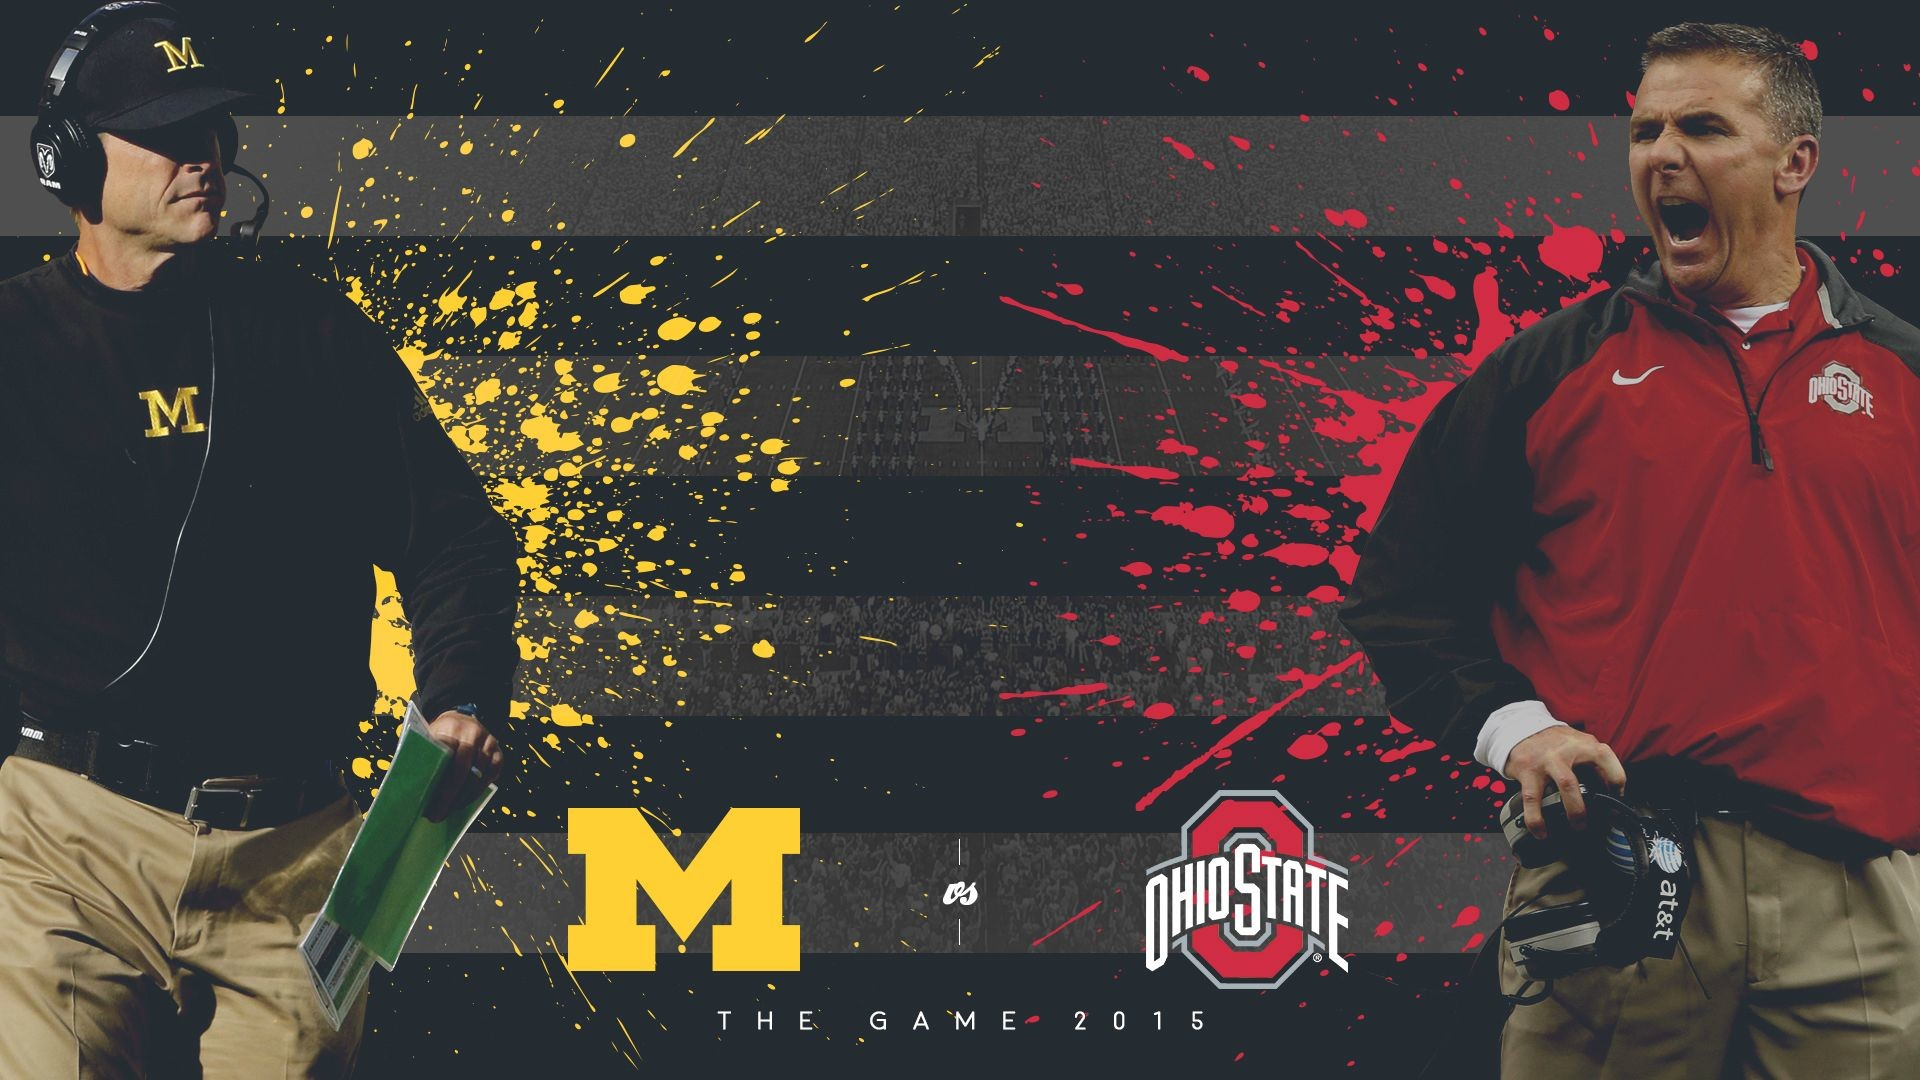 1920x1080 Free Michigan Wolverines Football Wallpaper